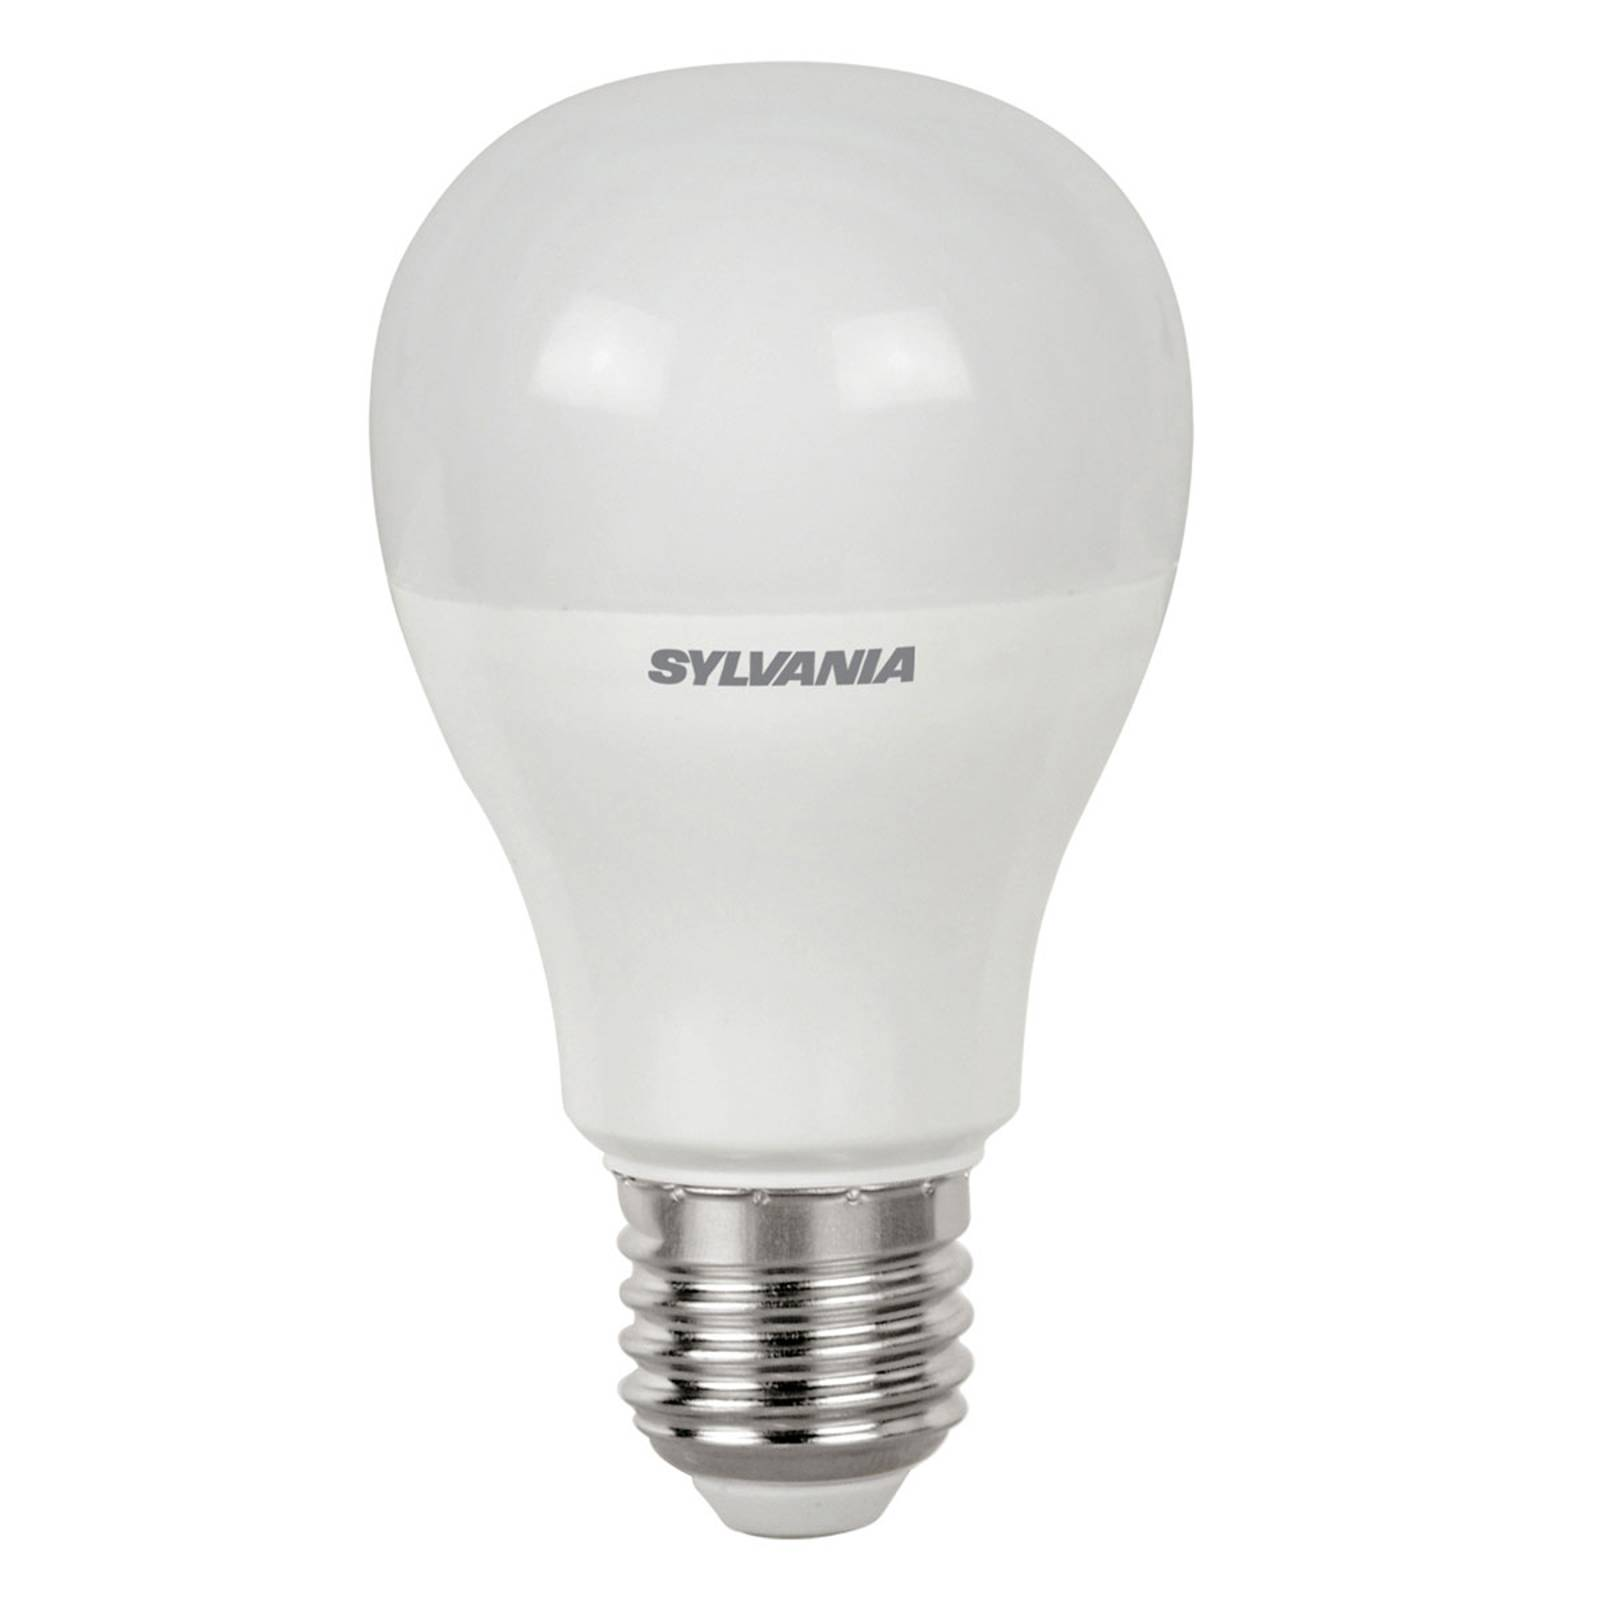 E27 11 W 865 LED bulb, matt from Stylvania